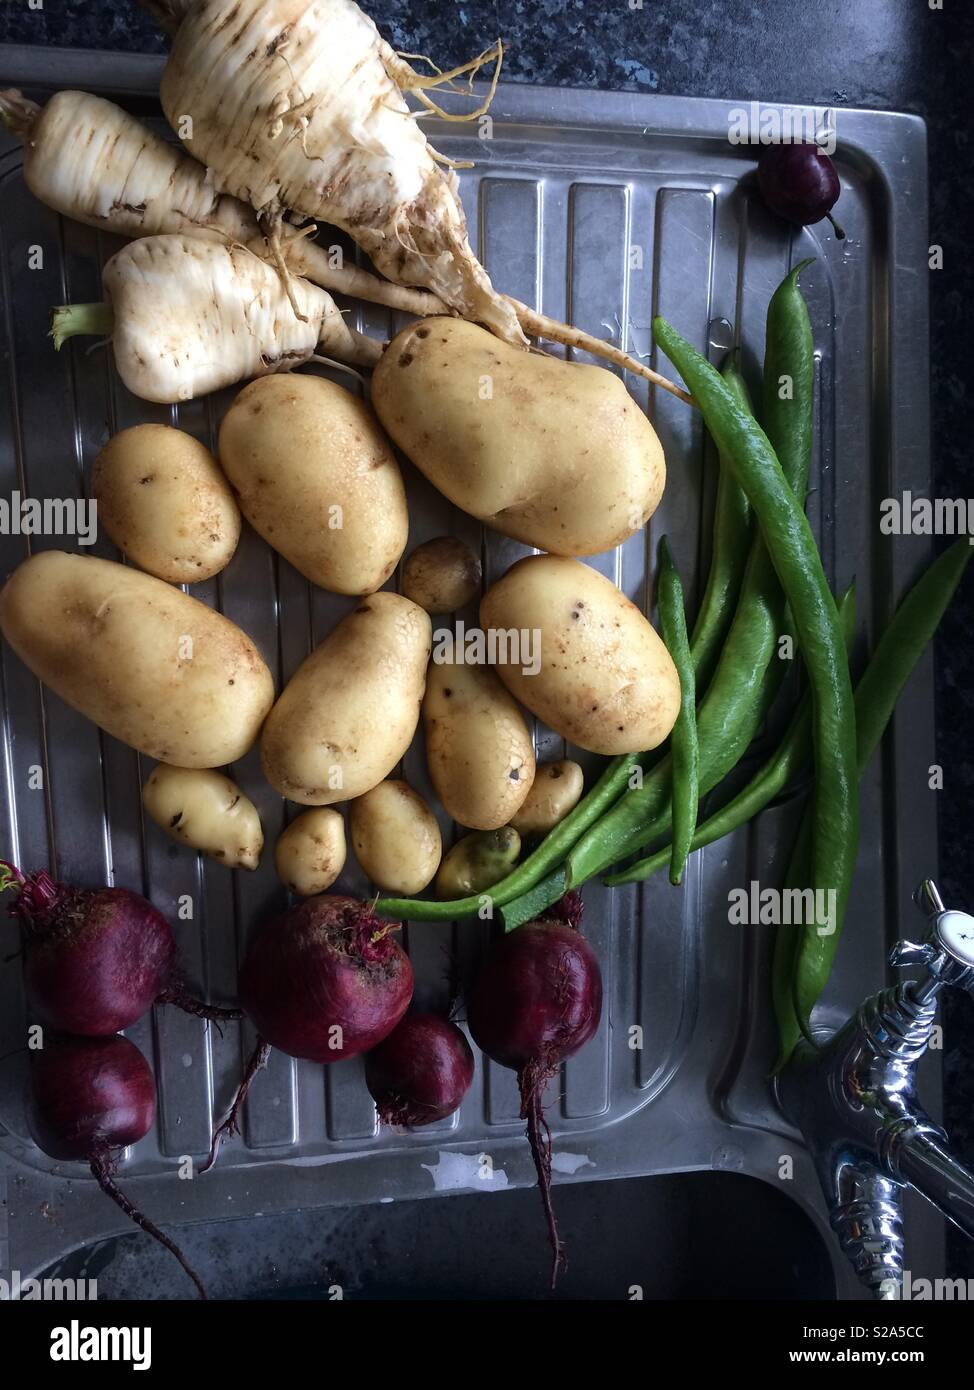 Self sufficient food for free allotment vegetables potatoes beans radishes parsnips - Stock Image